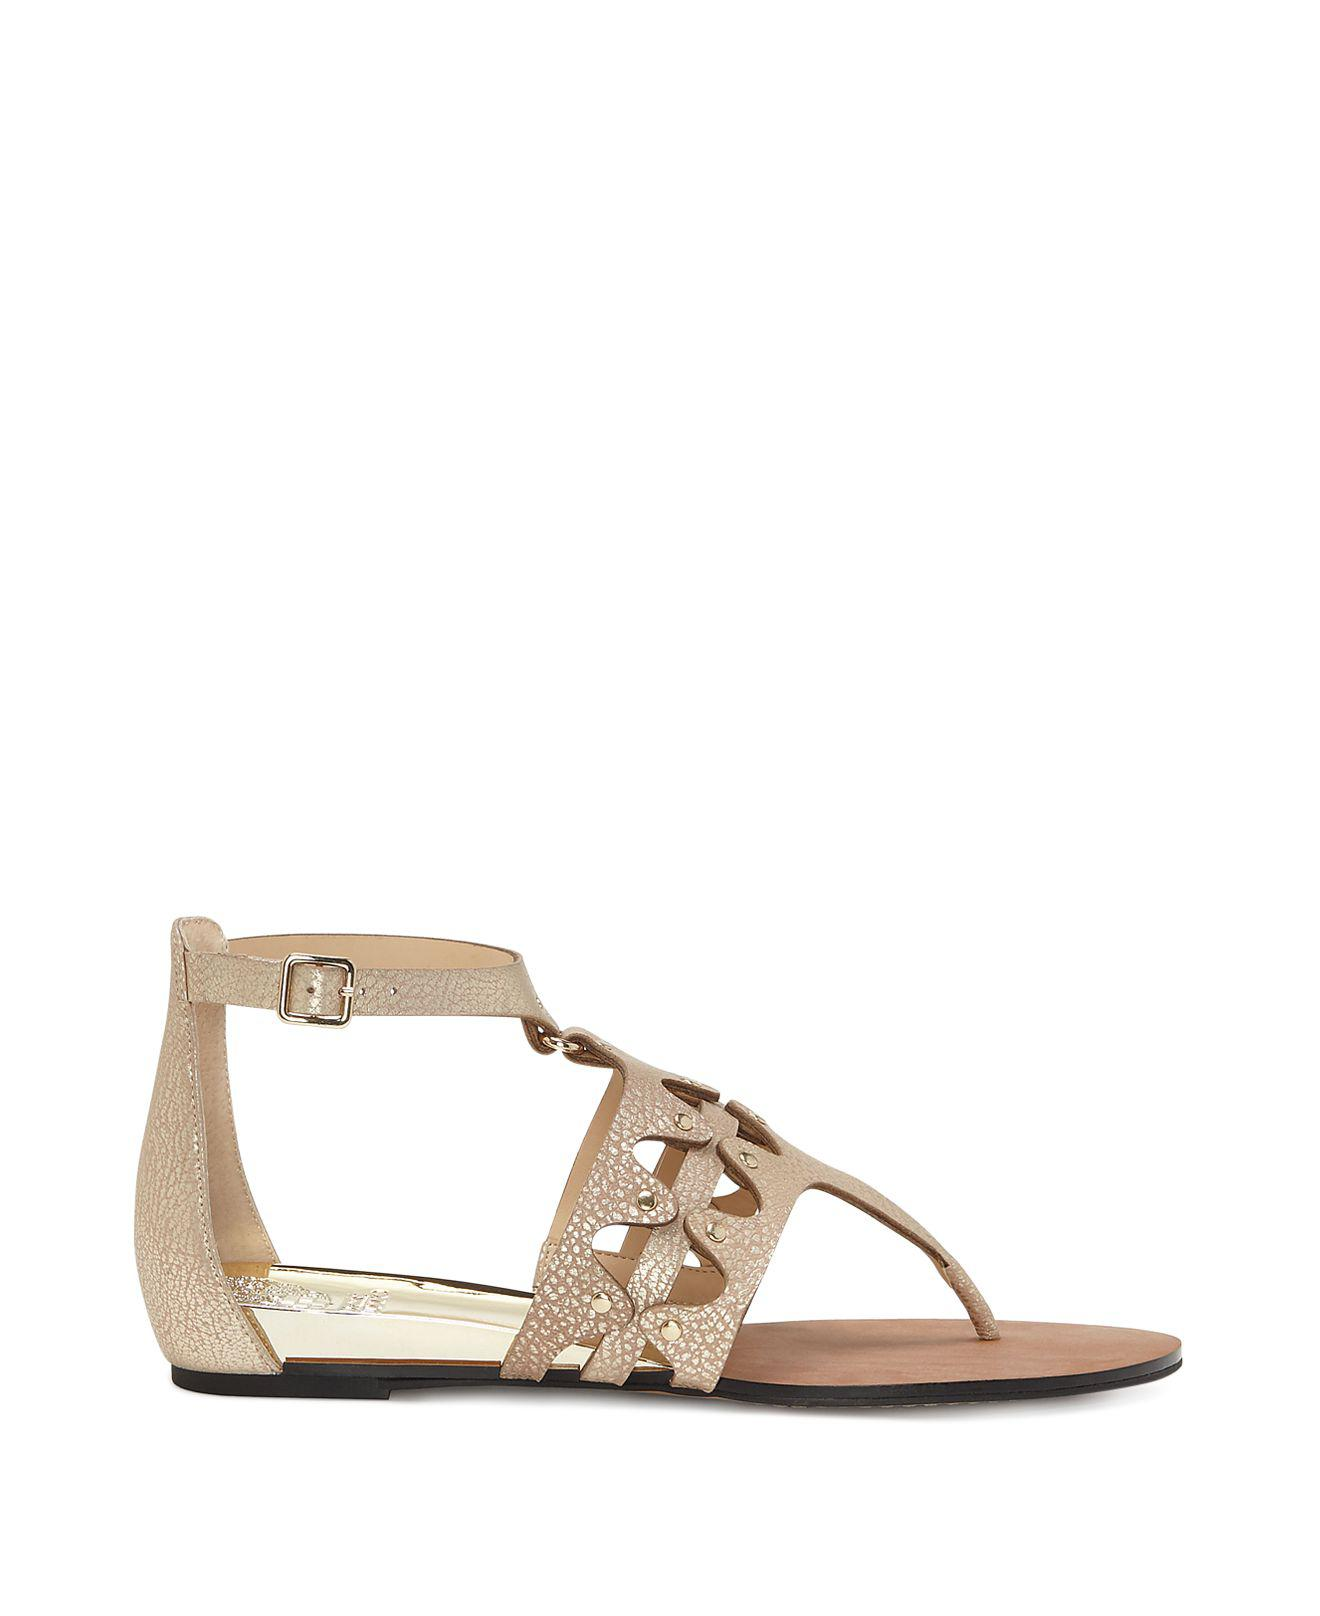 Vince Camuto Women's Arlanian Leather Cutout Demi Wedge Sandals a0V9J3